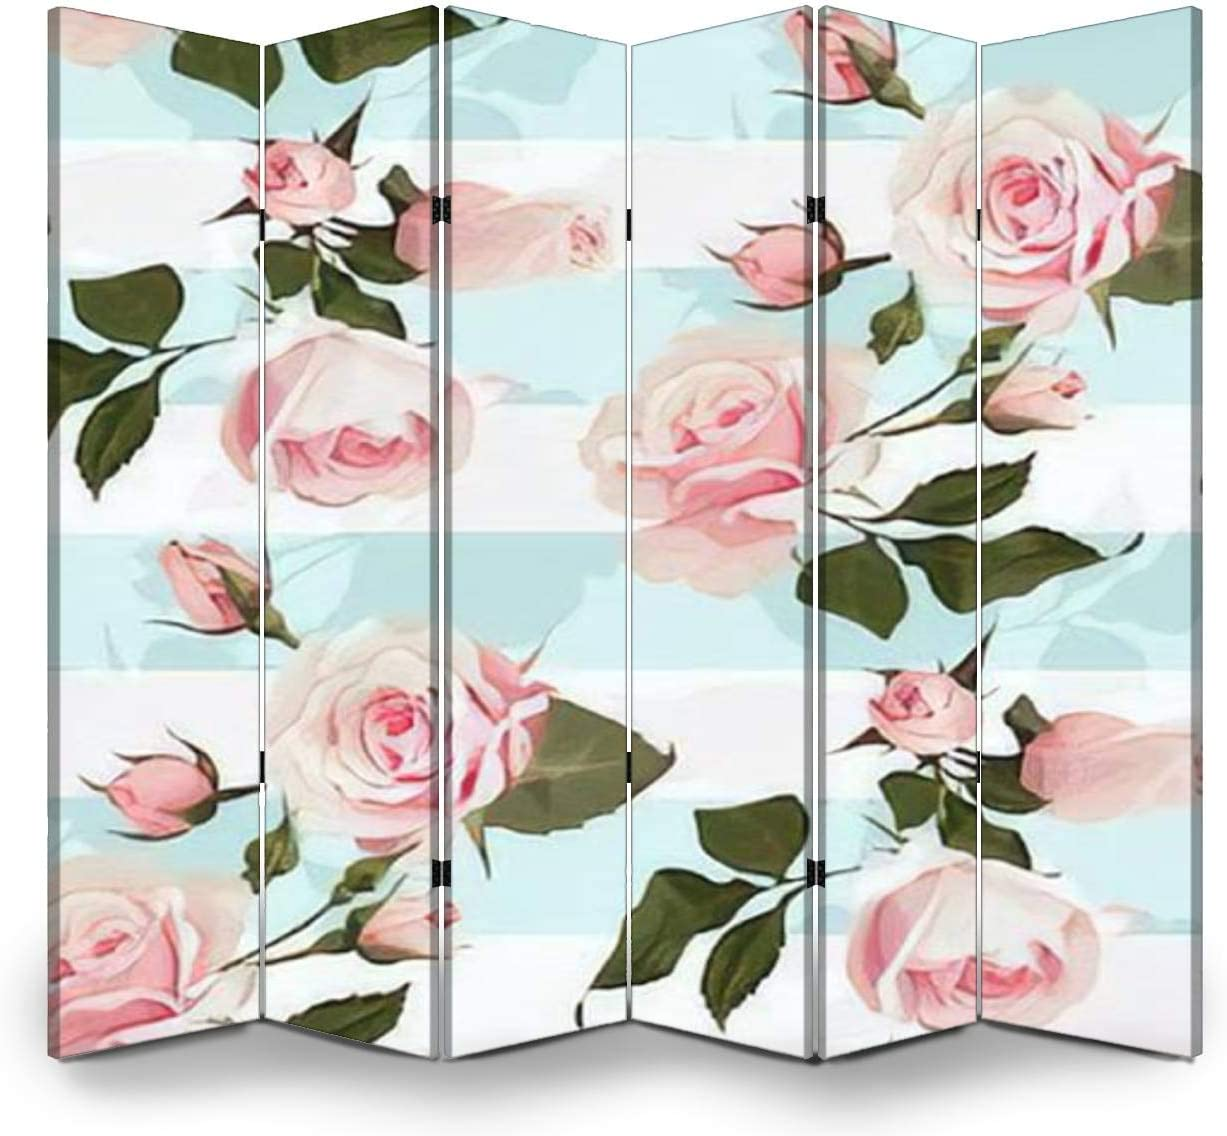 Wood Screen Room Divider Pink roses on a mint green stripes vector seamless pattern Flowered Folding Screen Canvas Privacy Partition Panels Dual-Sided Wall Divider Indoor Display Shelves 6 Panels